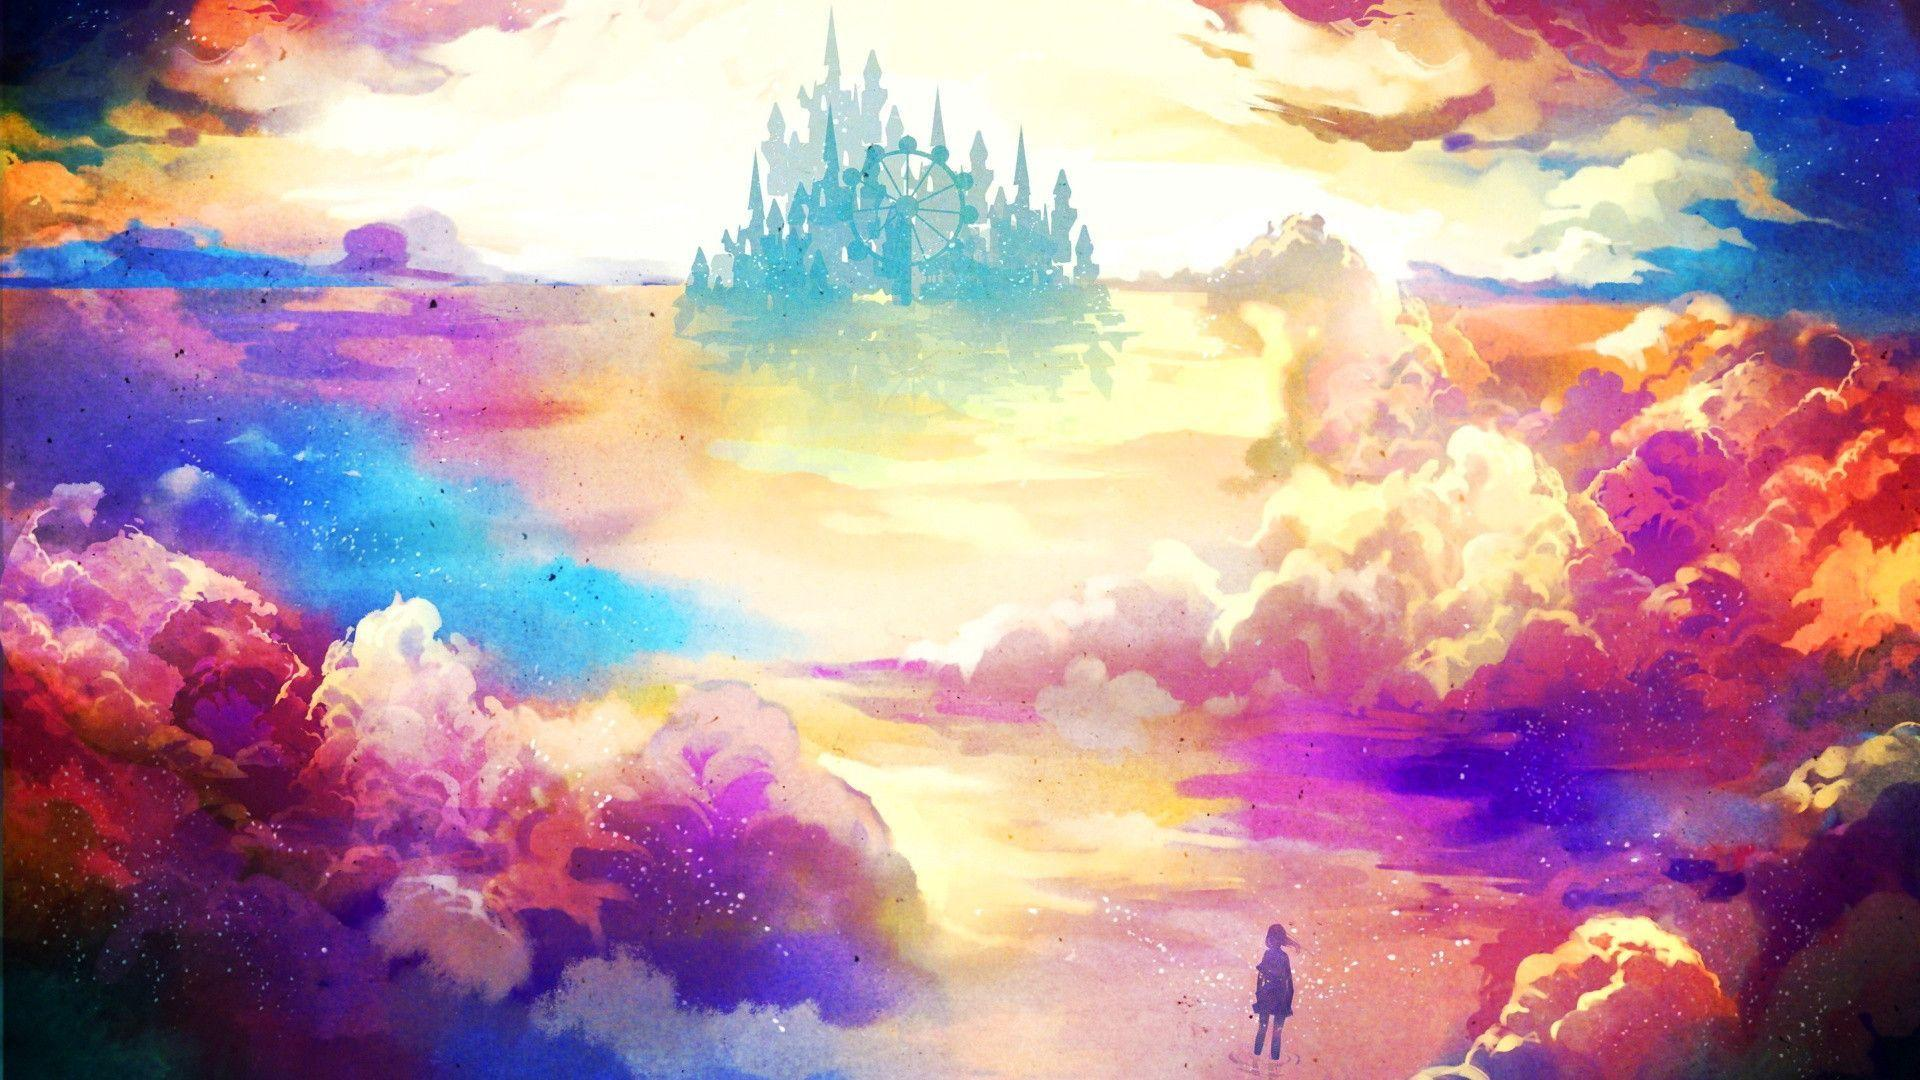 Colourful Fantasy Cloud Backgrounds: Fantasy World Wallpapers